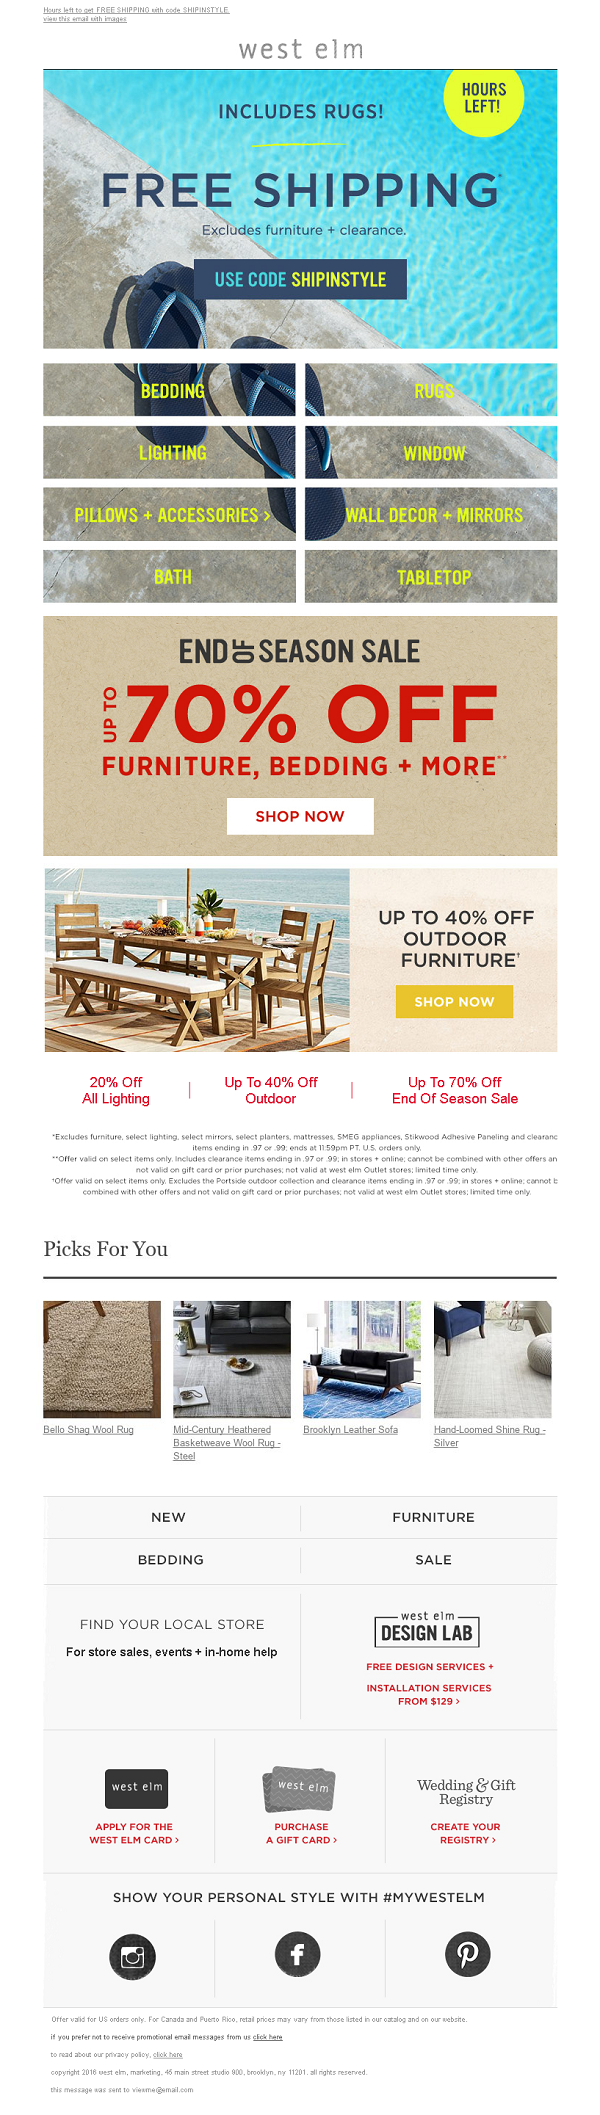 West Elm Email